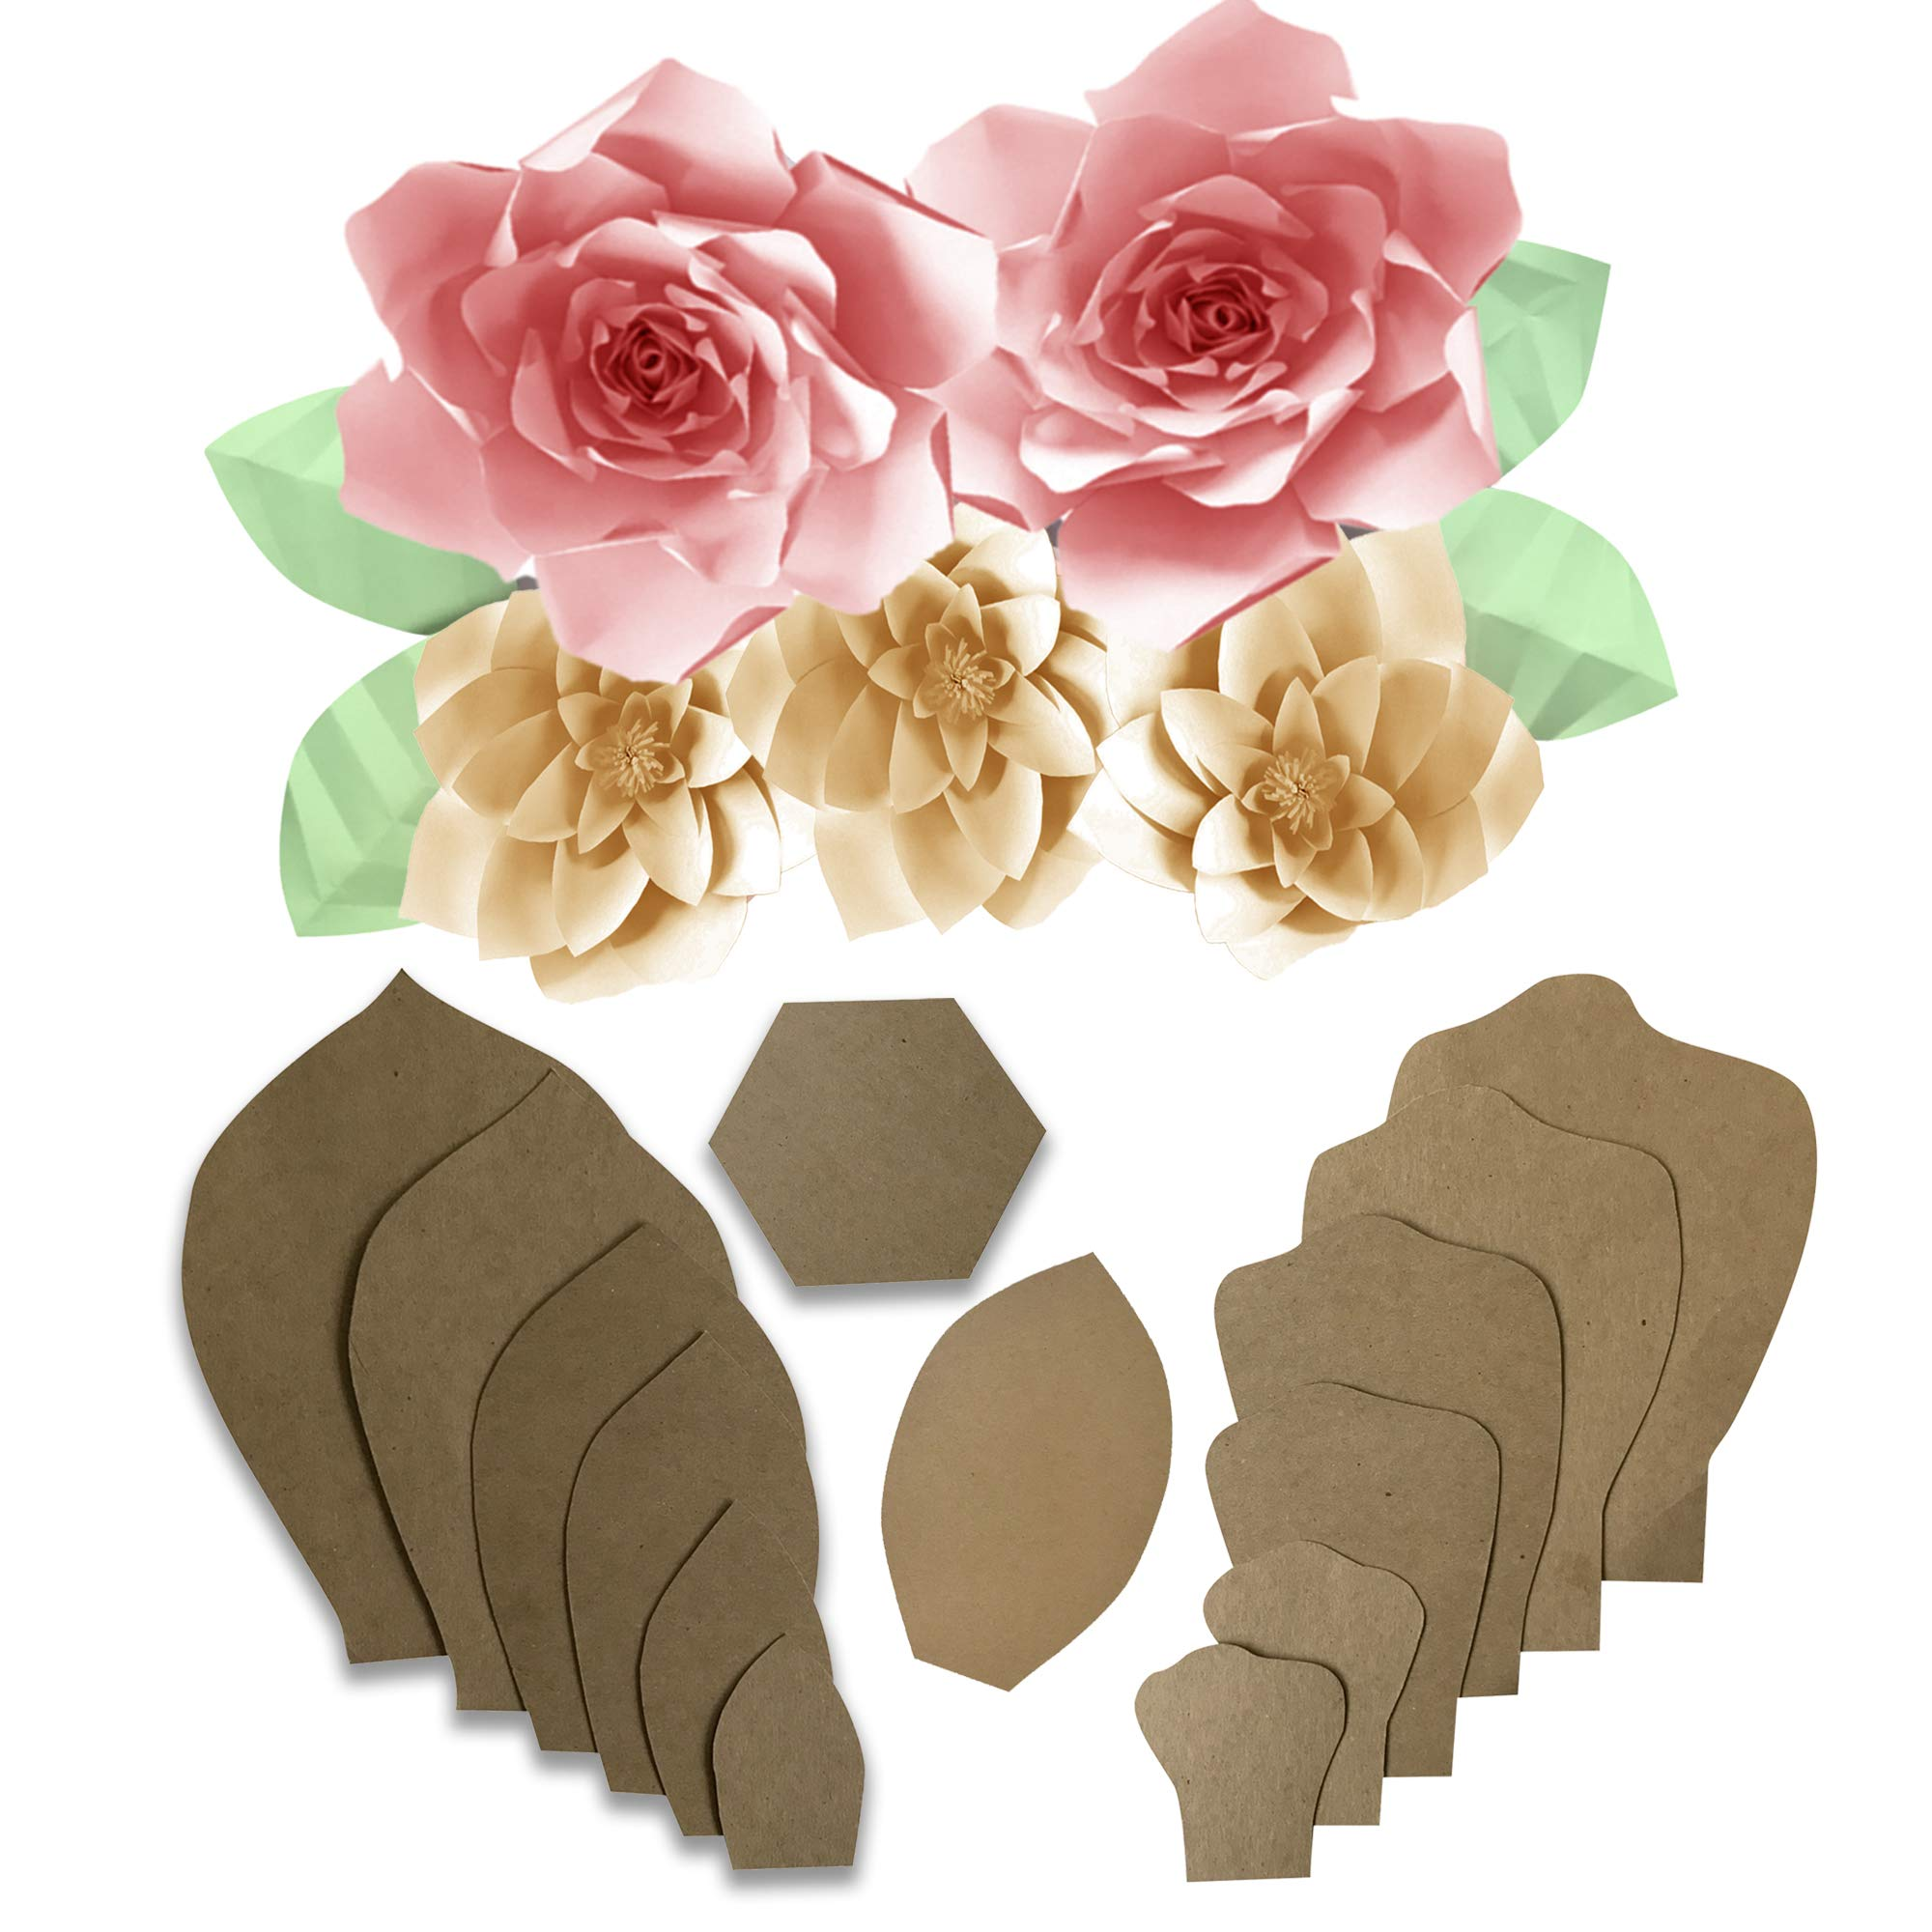 Paper Flower Template Kit - Make Your Own Paper Flowers - Paper Flowers Decorations For Wall - Make Unlimited Flowers - DIY Do It Yourself - Make All Sizes (2- Pack (Daisy/Gardenia))